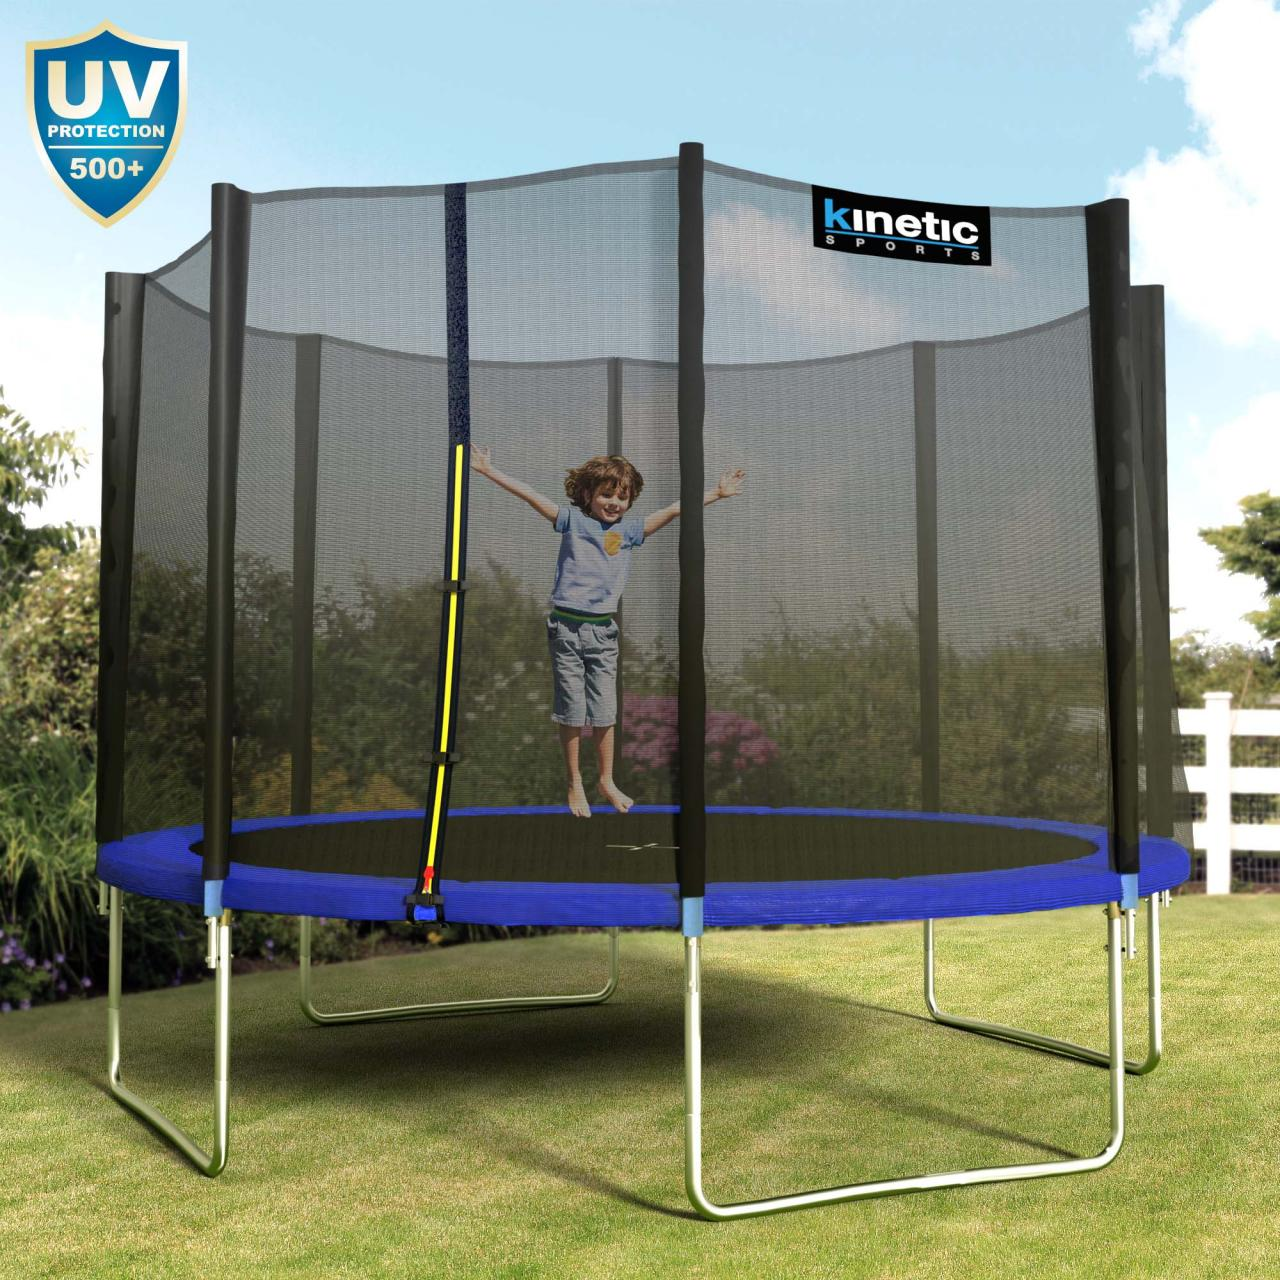 kinetic sports trampolin outdoor garten inkl netz sprungtuch randabdeckung set ebay. Black Bedroom Furniture Sets. Home Design Ideas